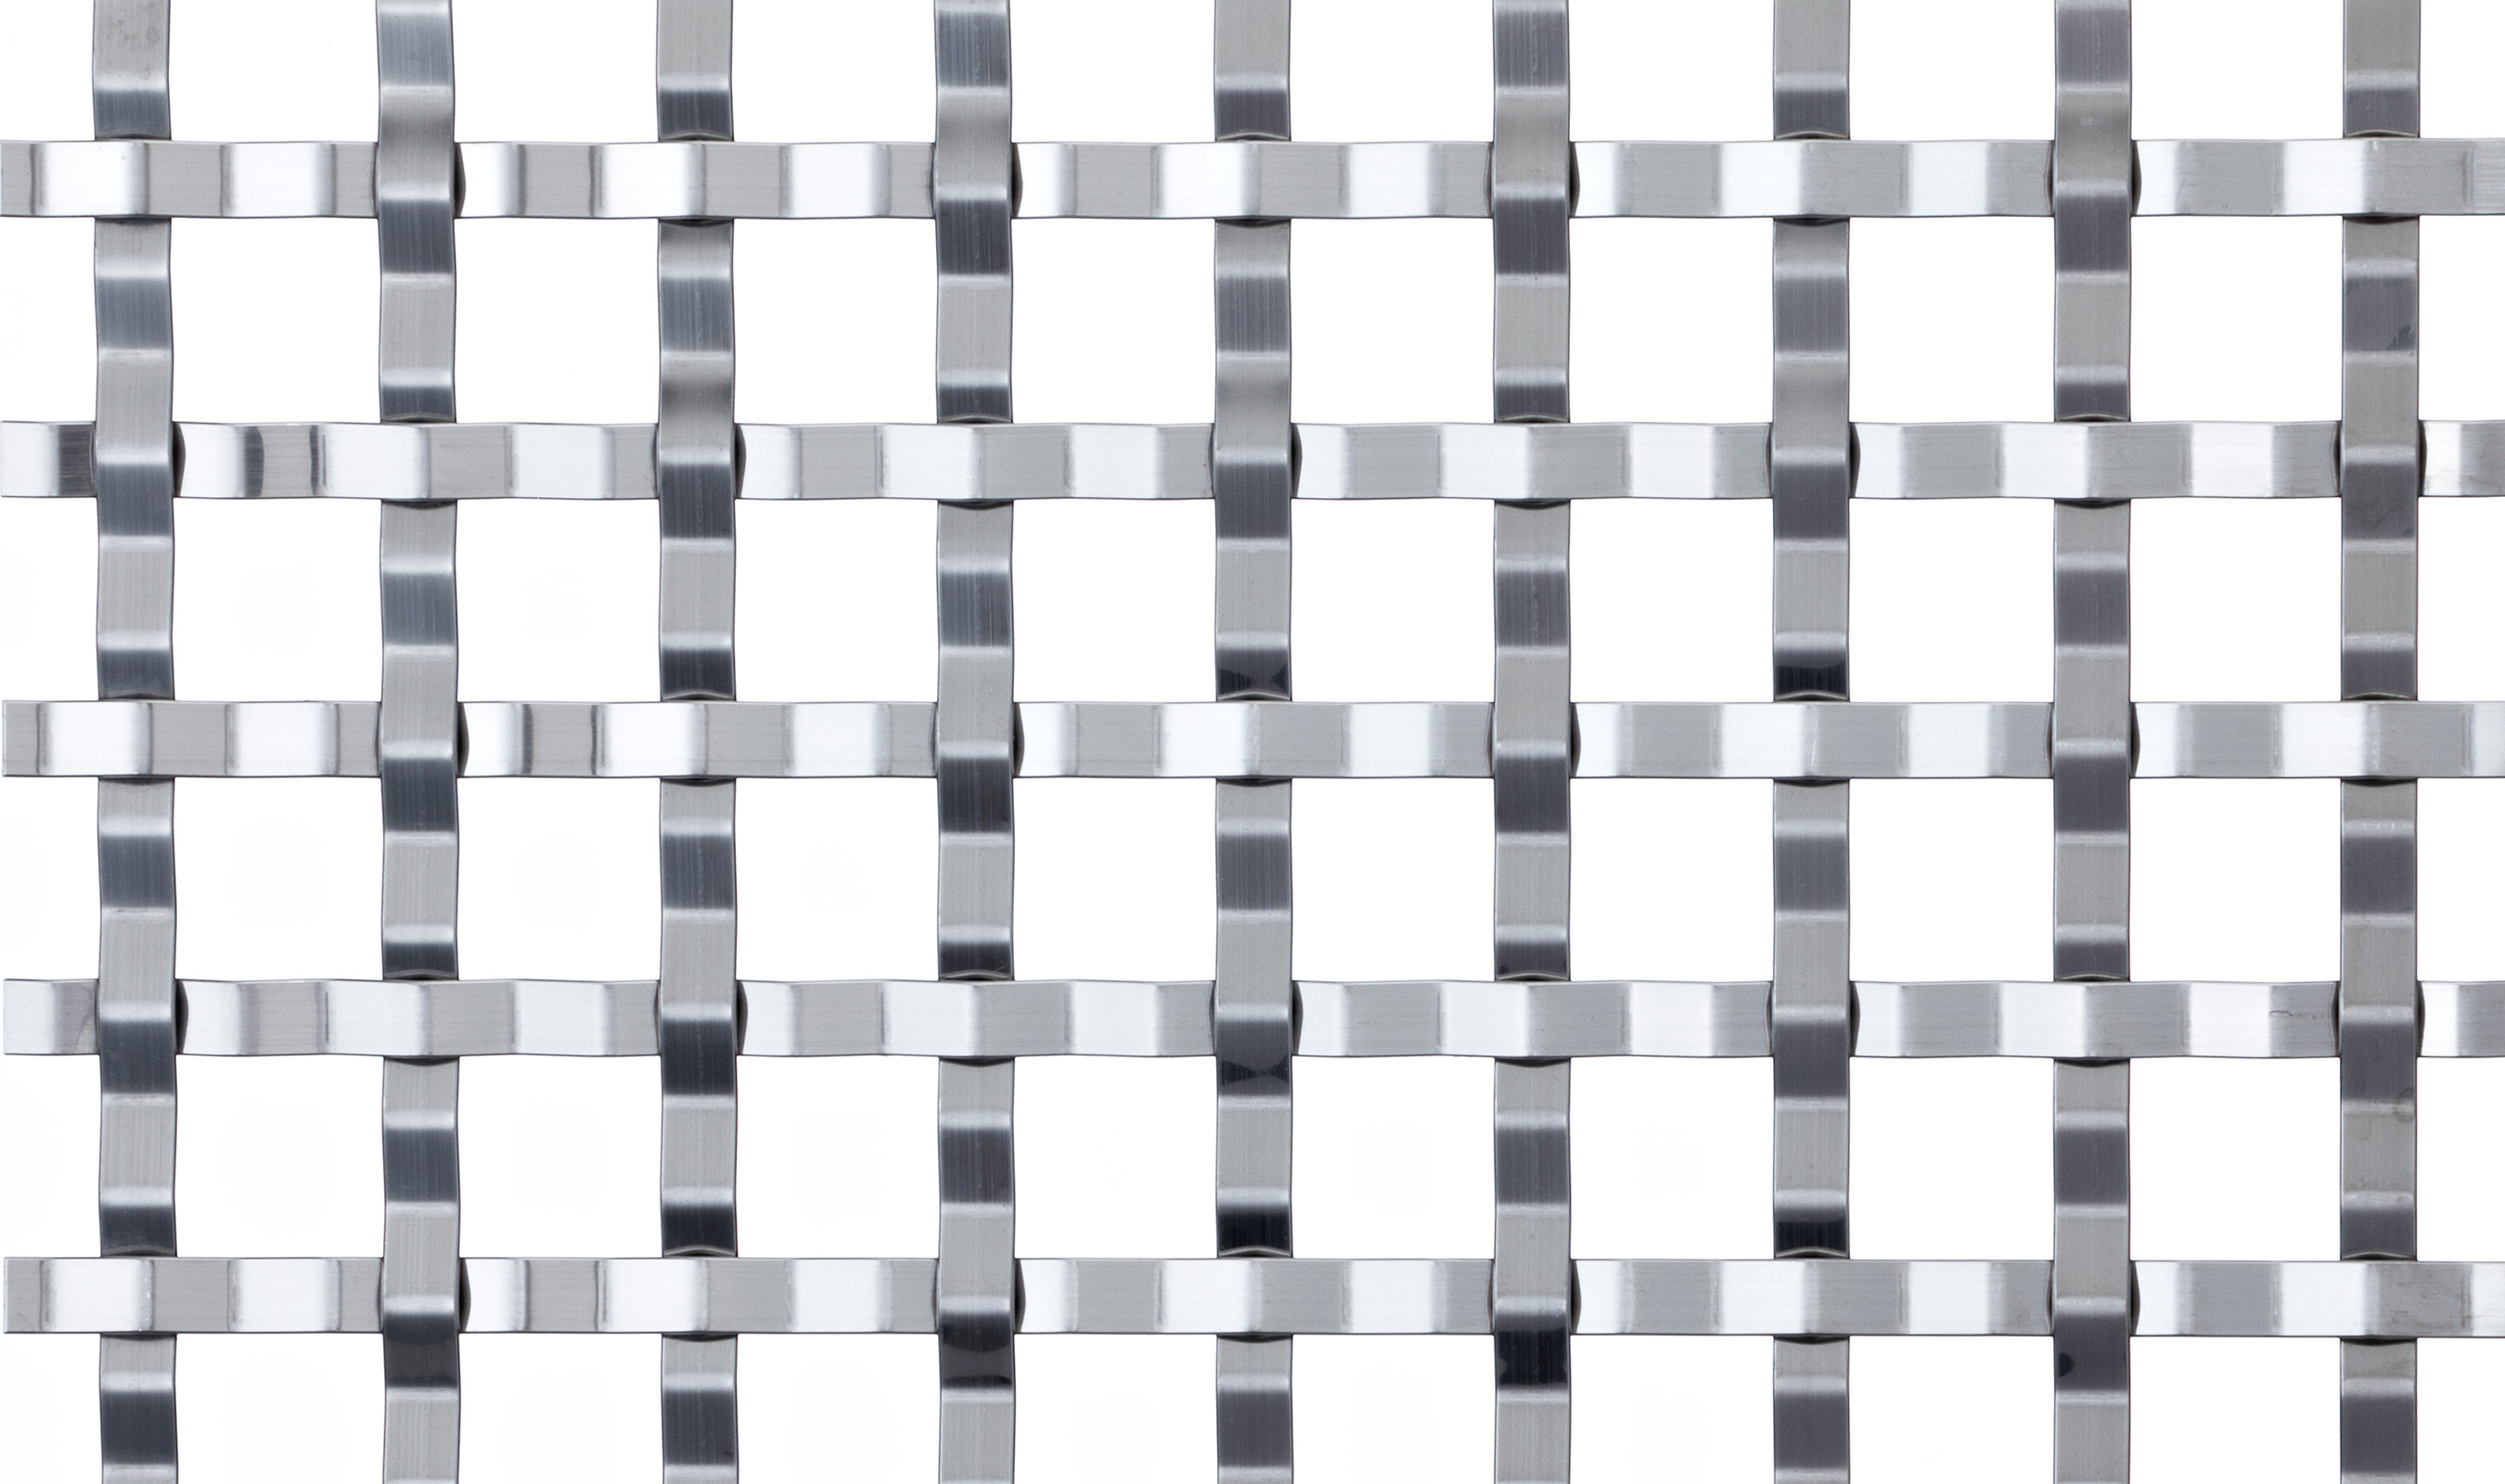 S-15 in Stainless Woven Wire Mesh